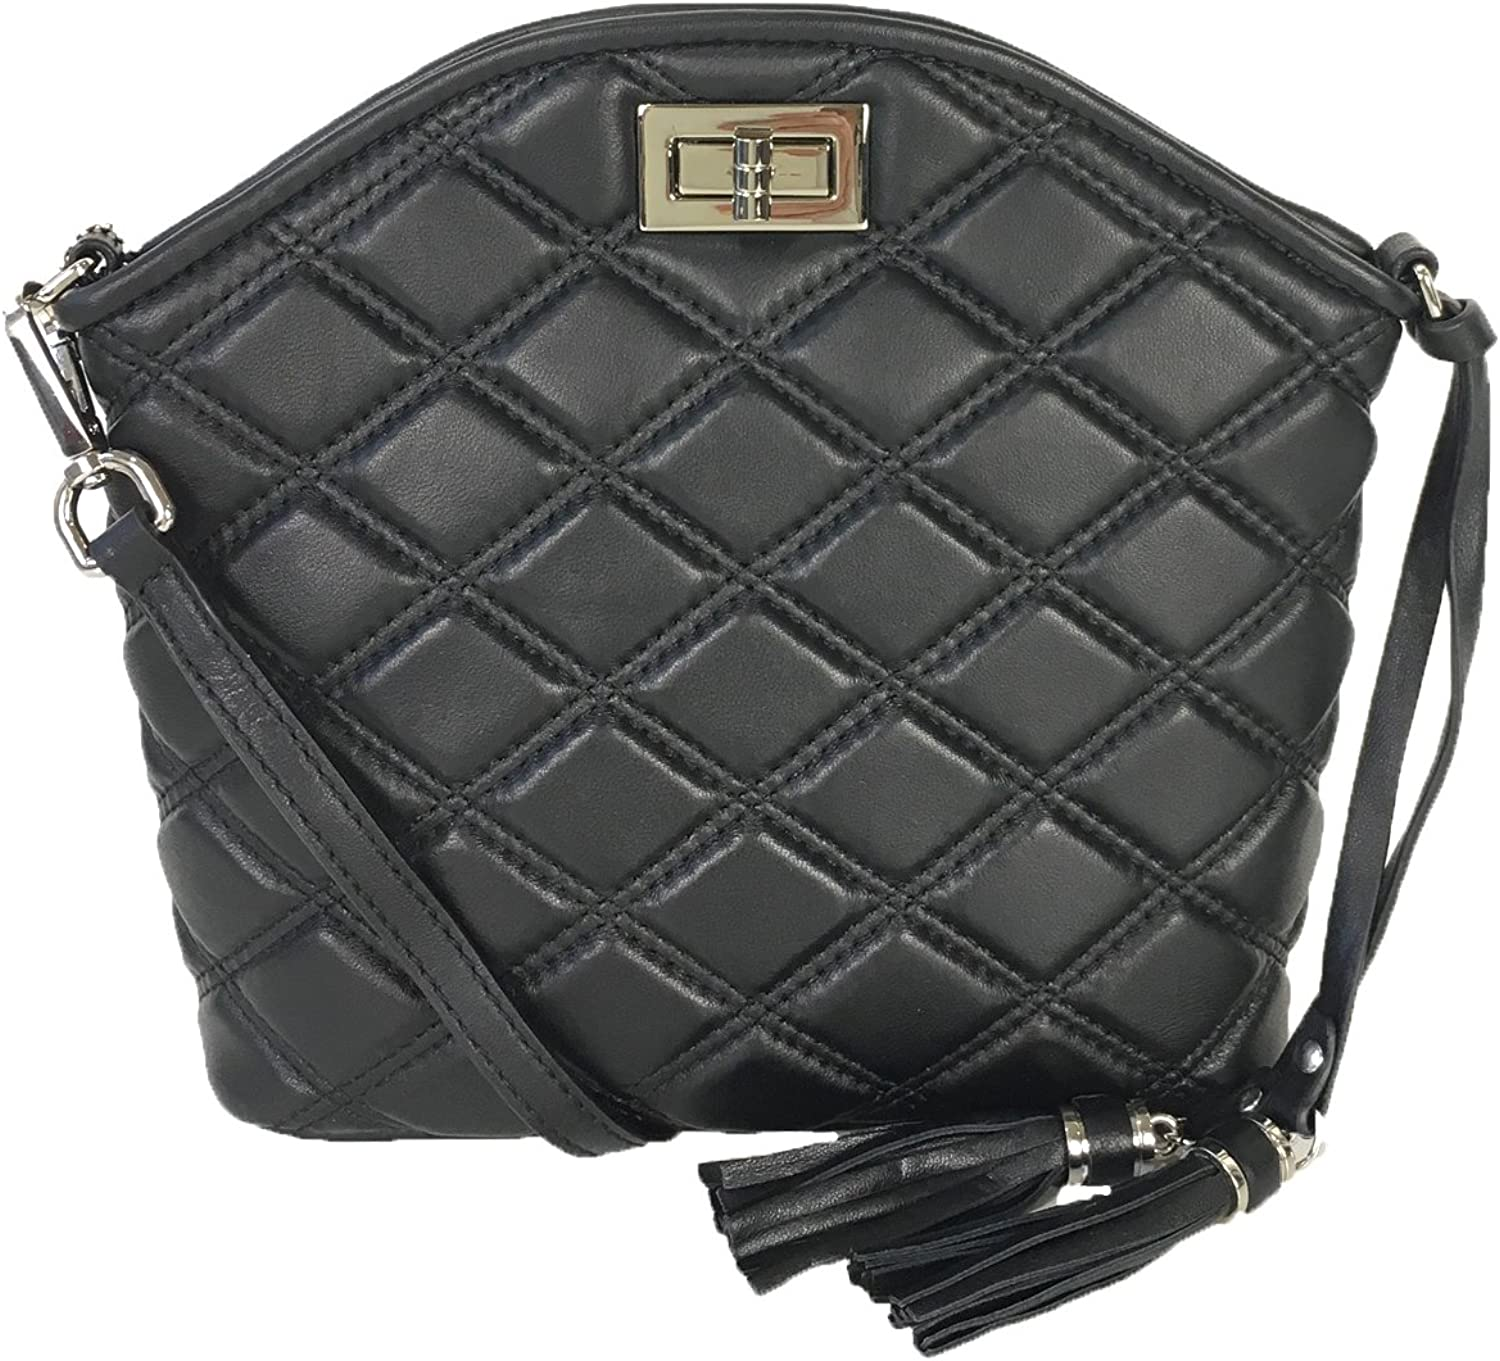 Zenith Quilted Leather Dome Congreenible Crossbody, Black